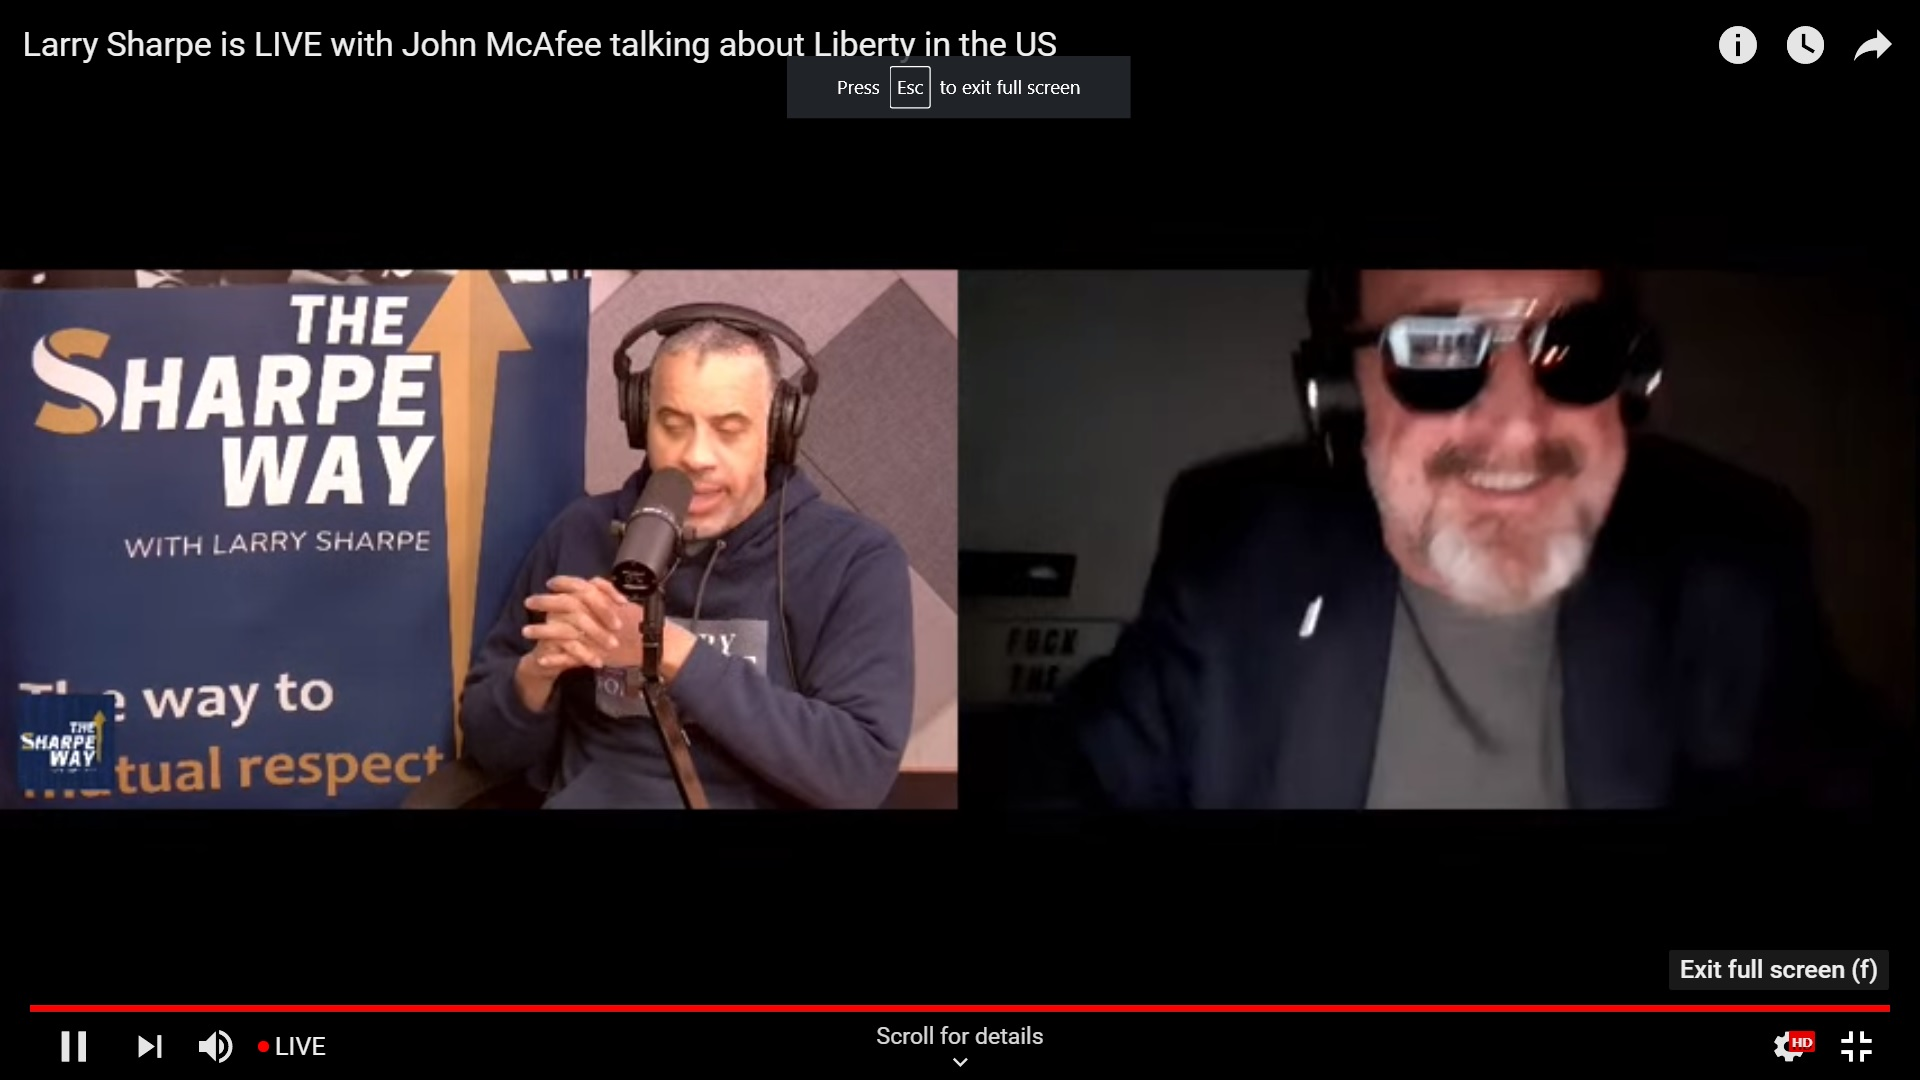 John McAfee Is Running For President in 2020